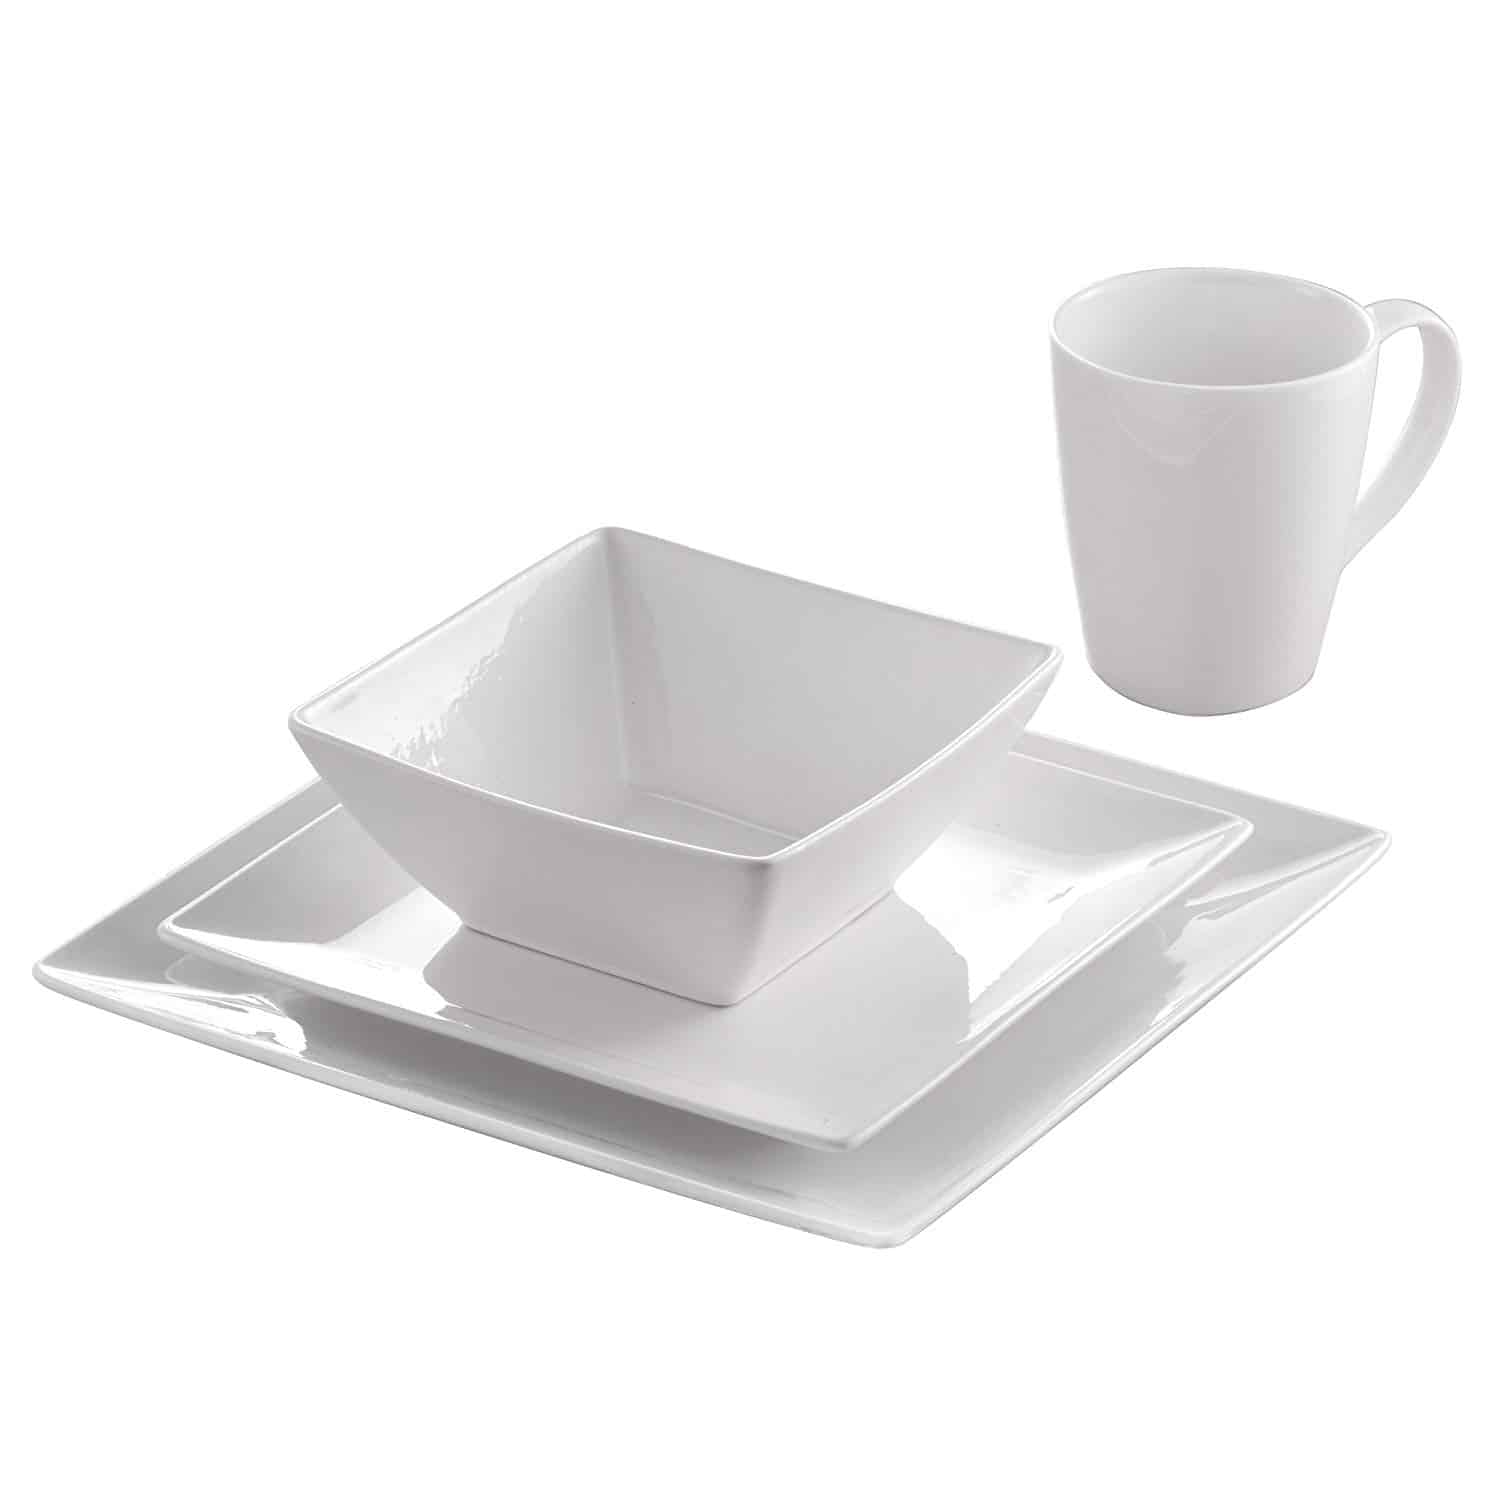 Roscher 32-piece pure square fine China dinnerware set is made from delicate fine porcelain, this set is elegant and stylish, with a square shape to enable you to serve your dishes to meet restaurant standards.